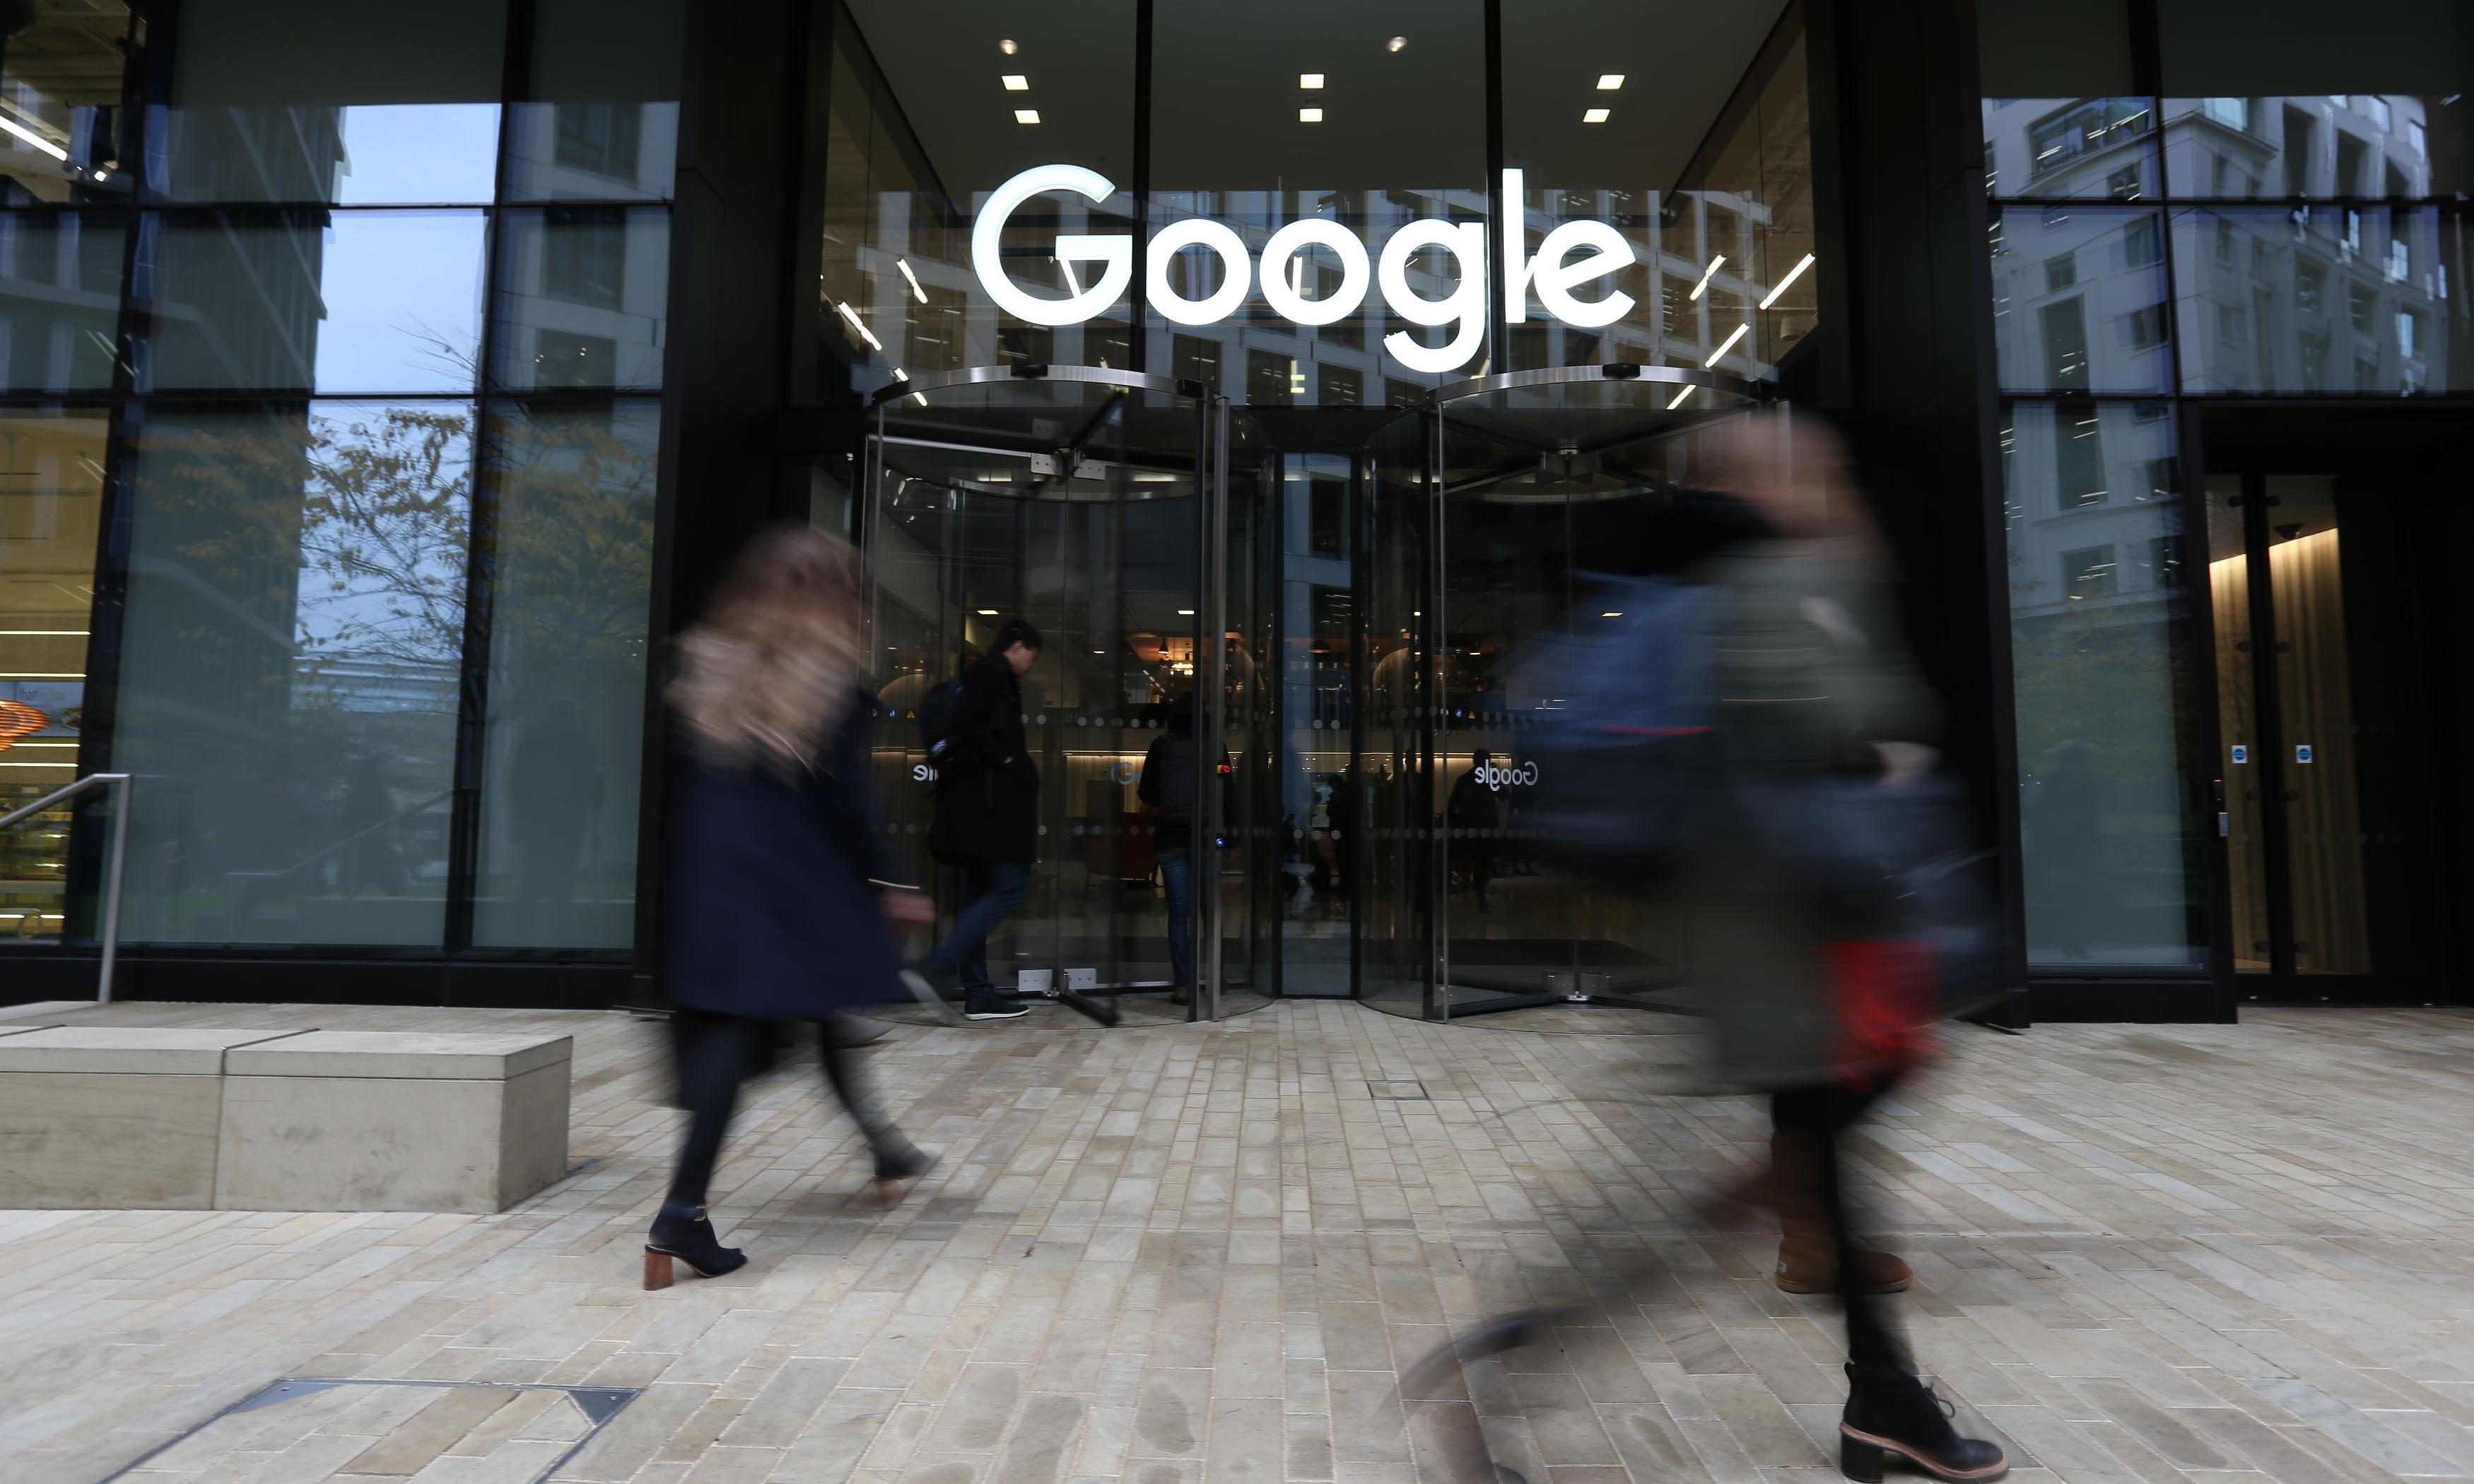 Google admits major underreporting of election ad spend